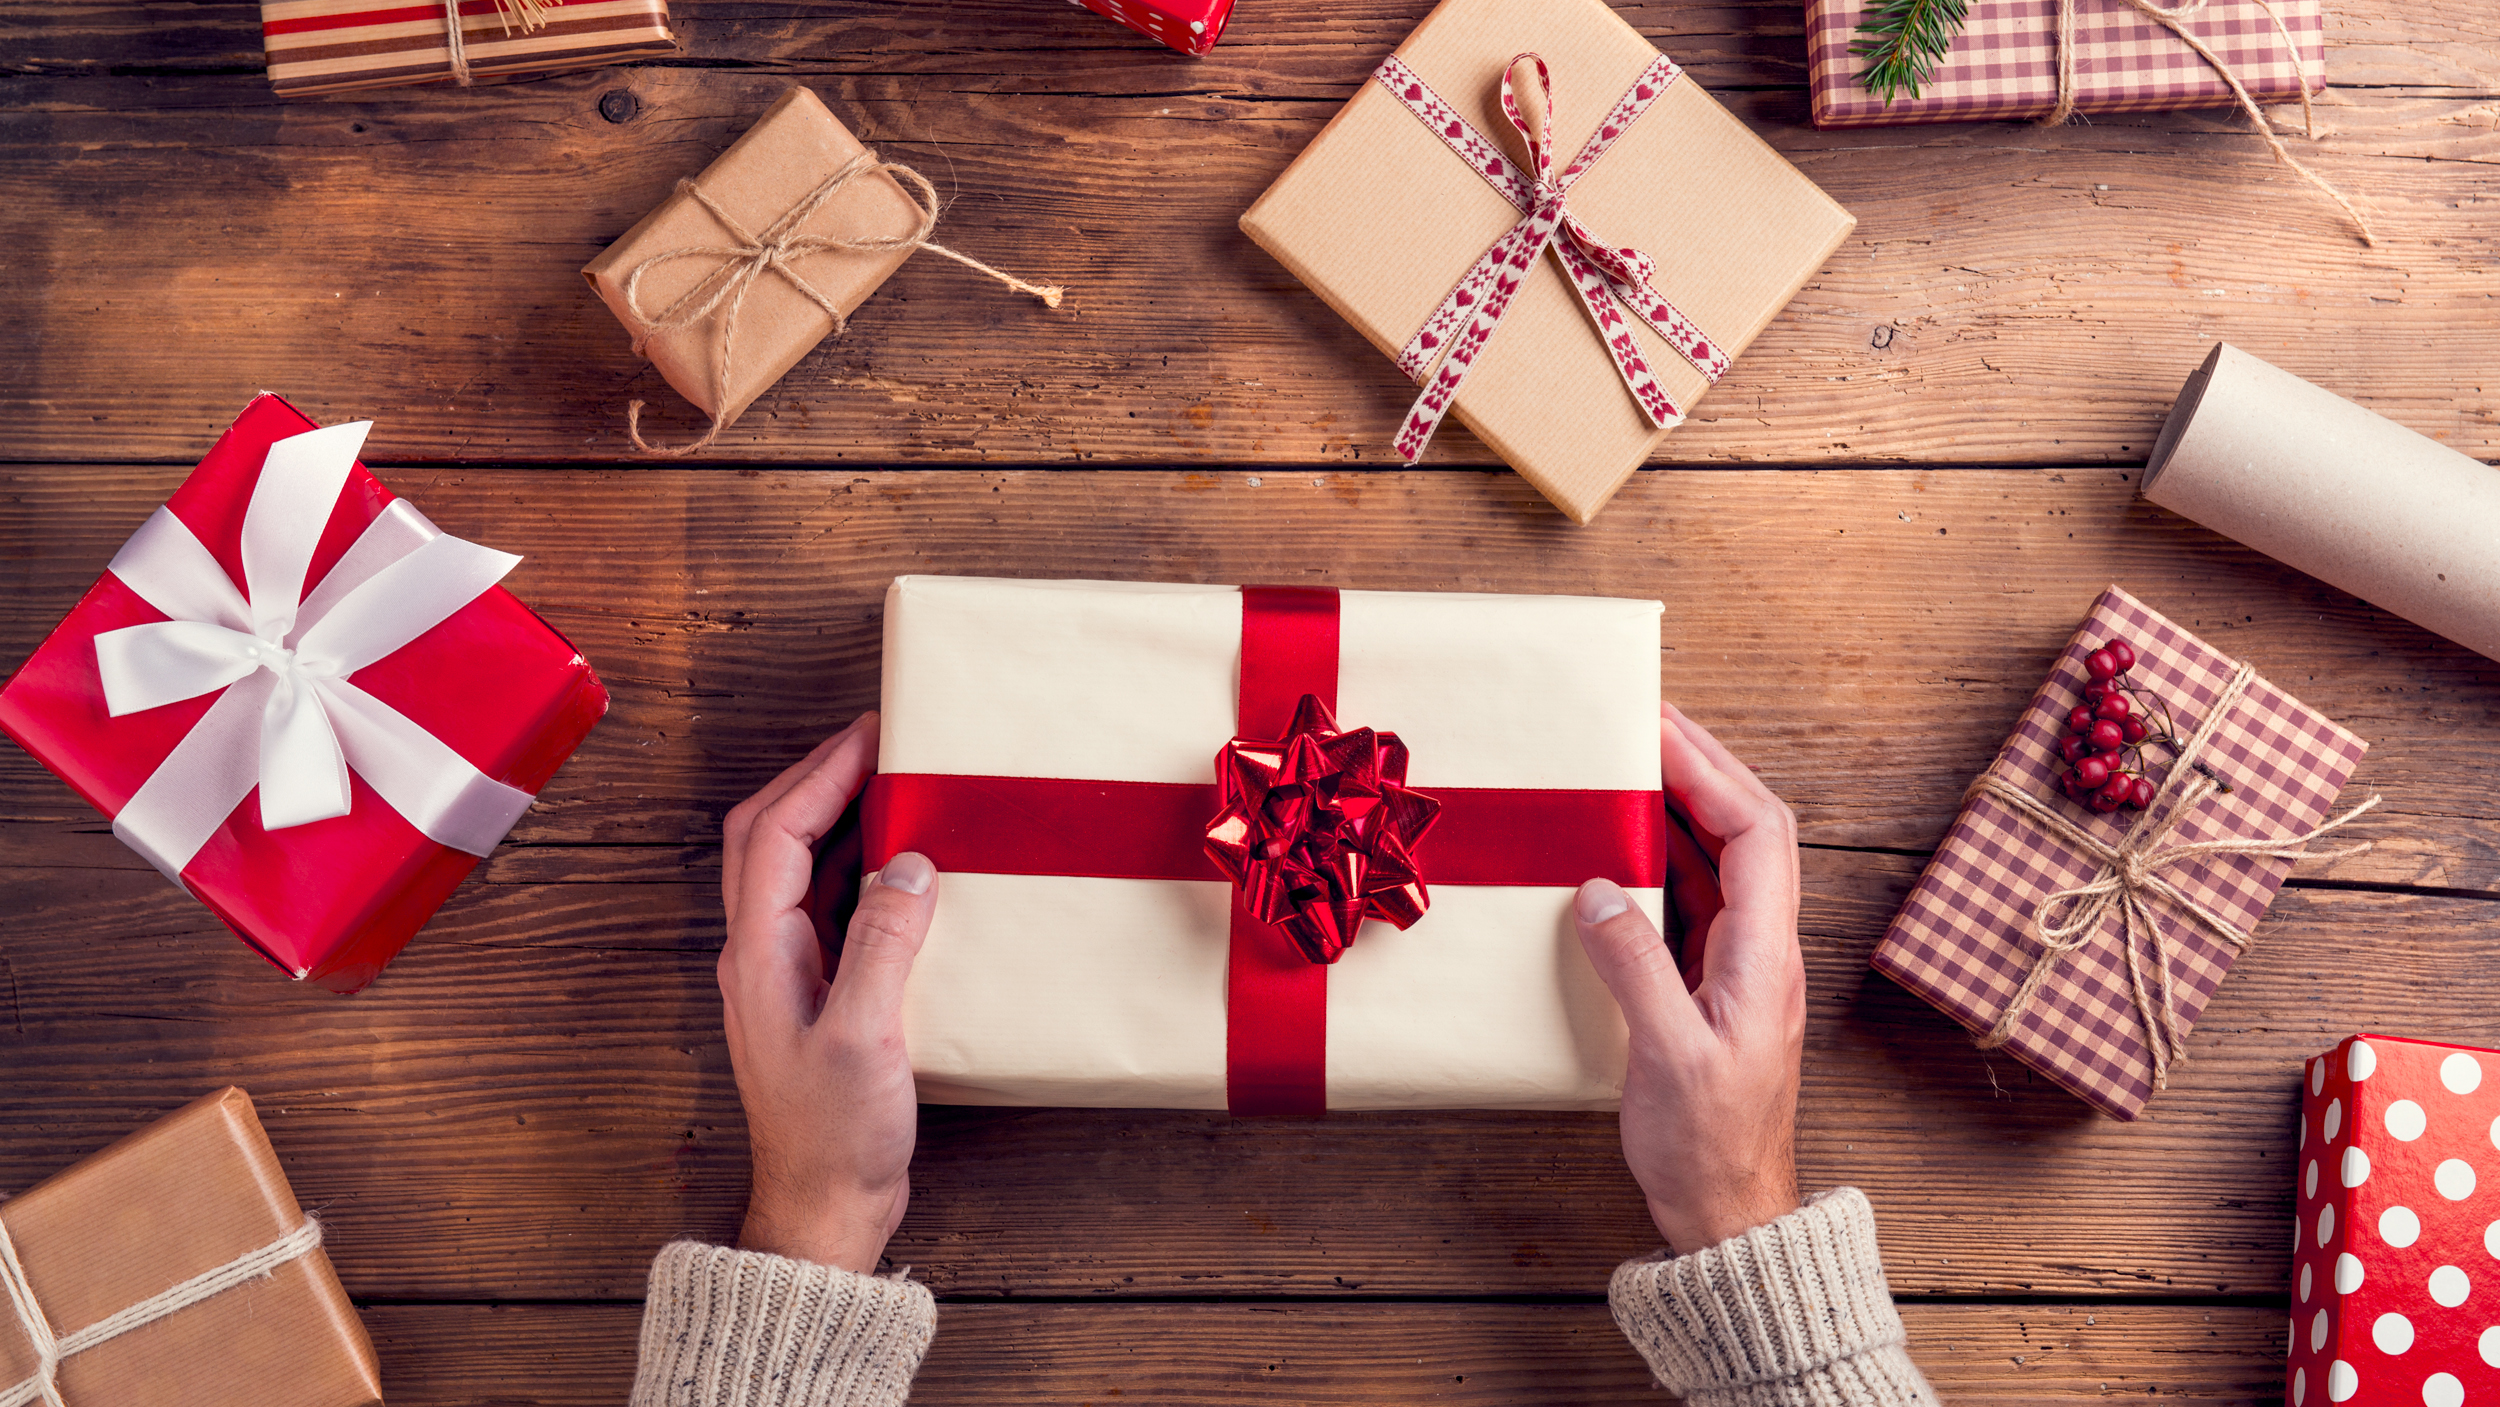 Share Memorable New Year Gifts With Your Friends